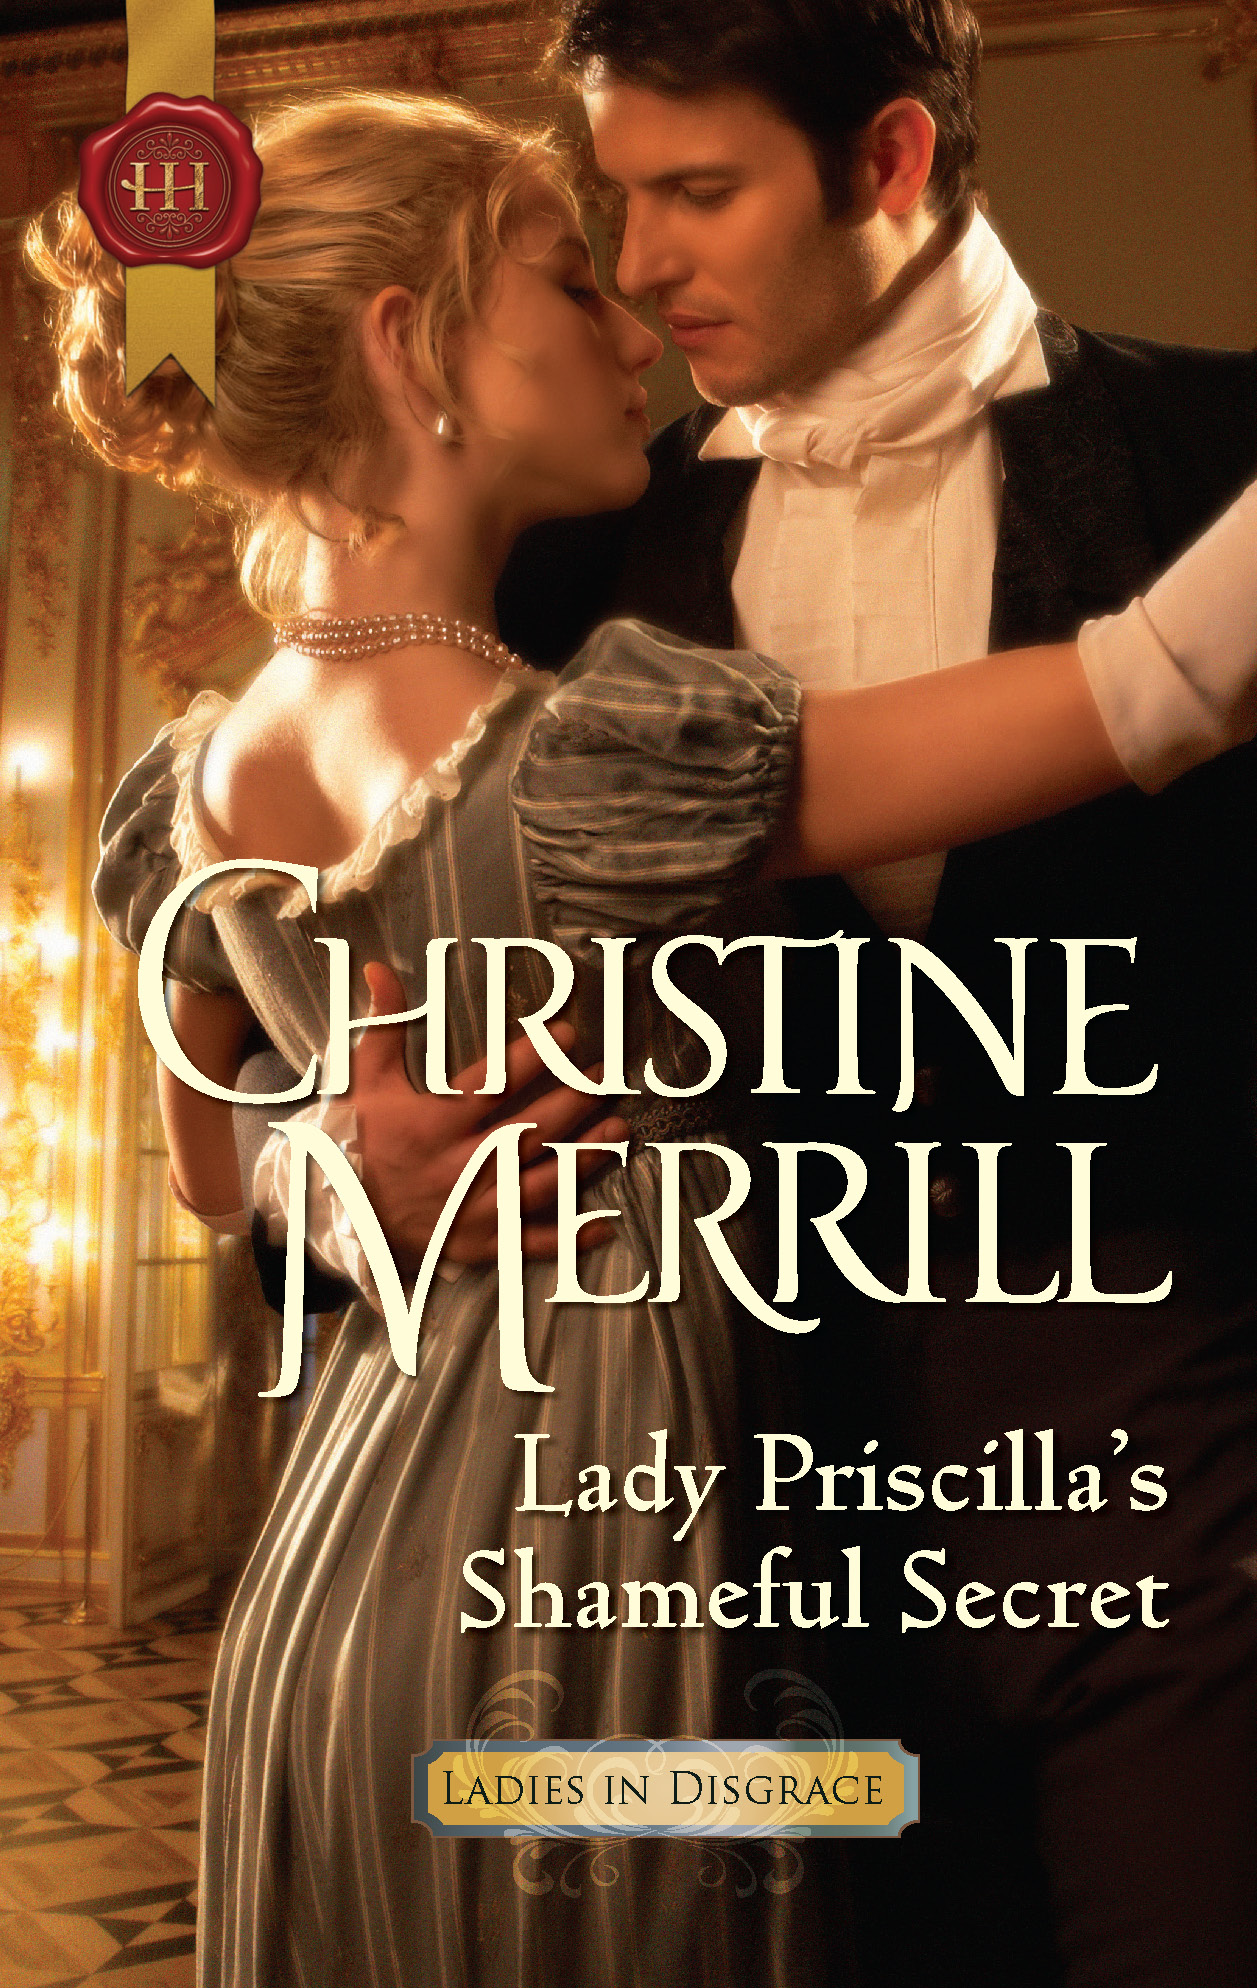 Lady Priscilla's Shameful Secret By: Christine Merrill